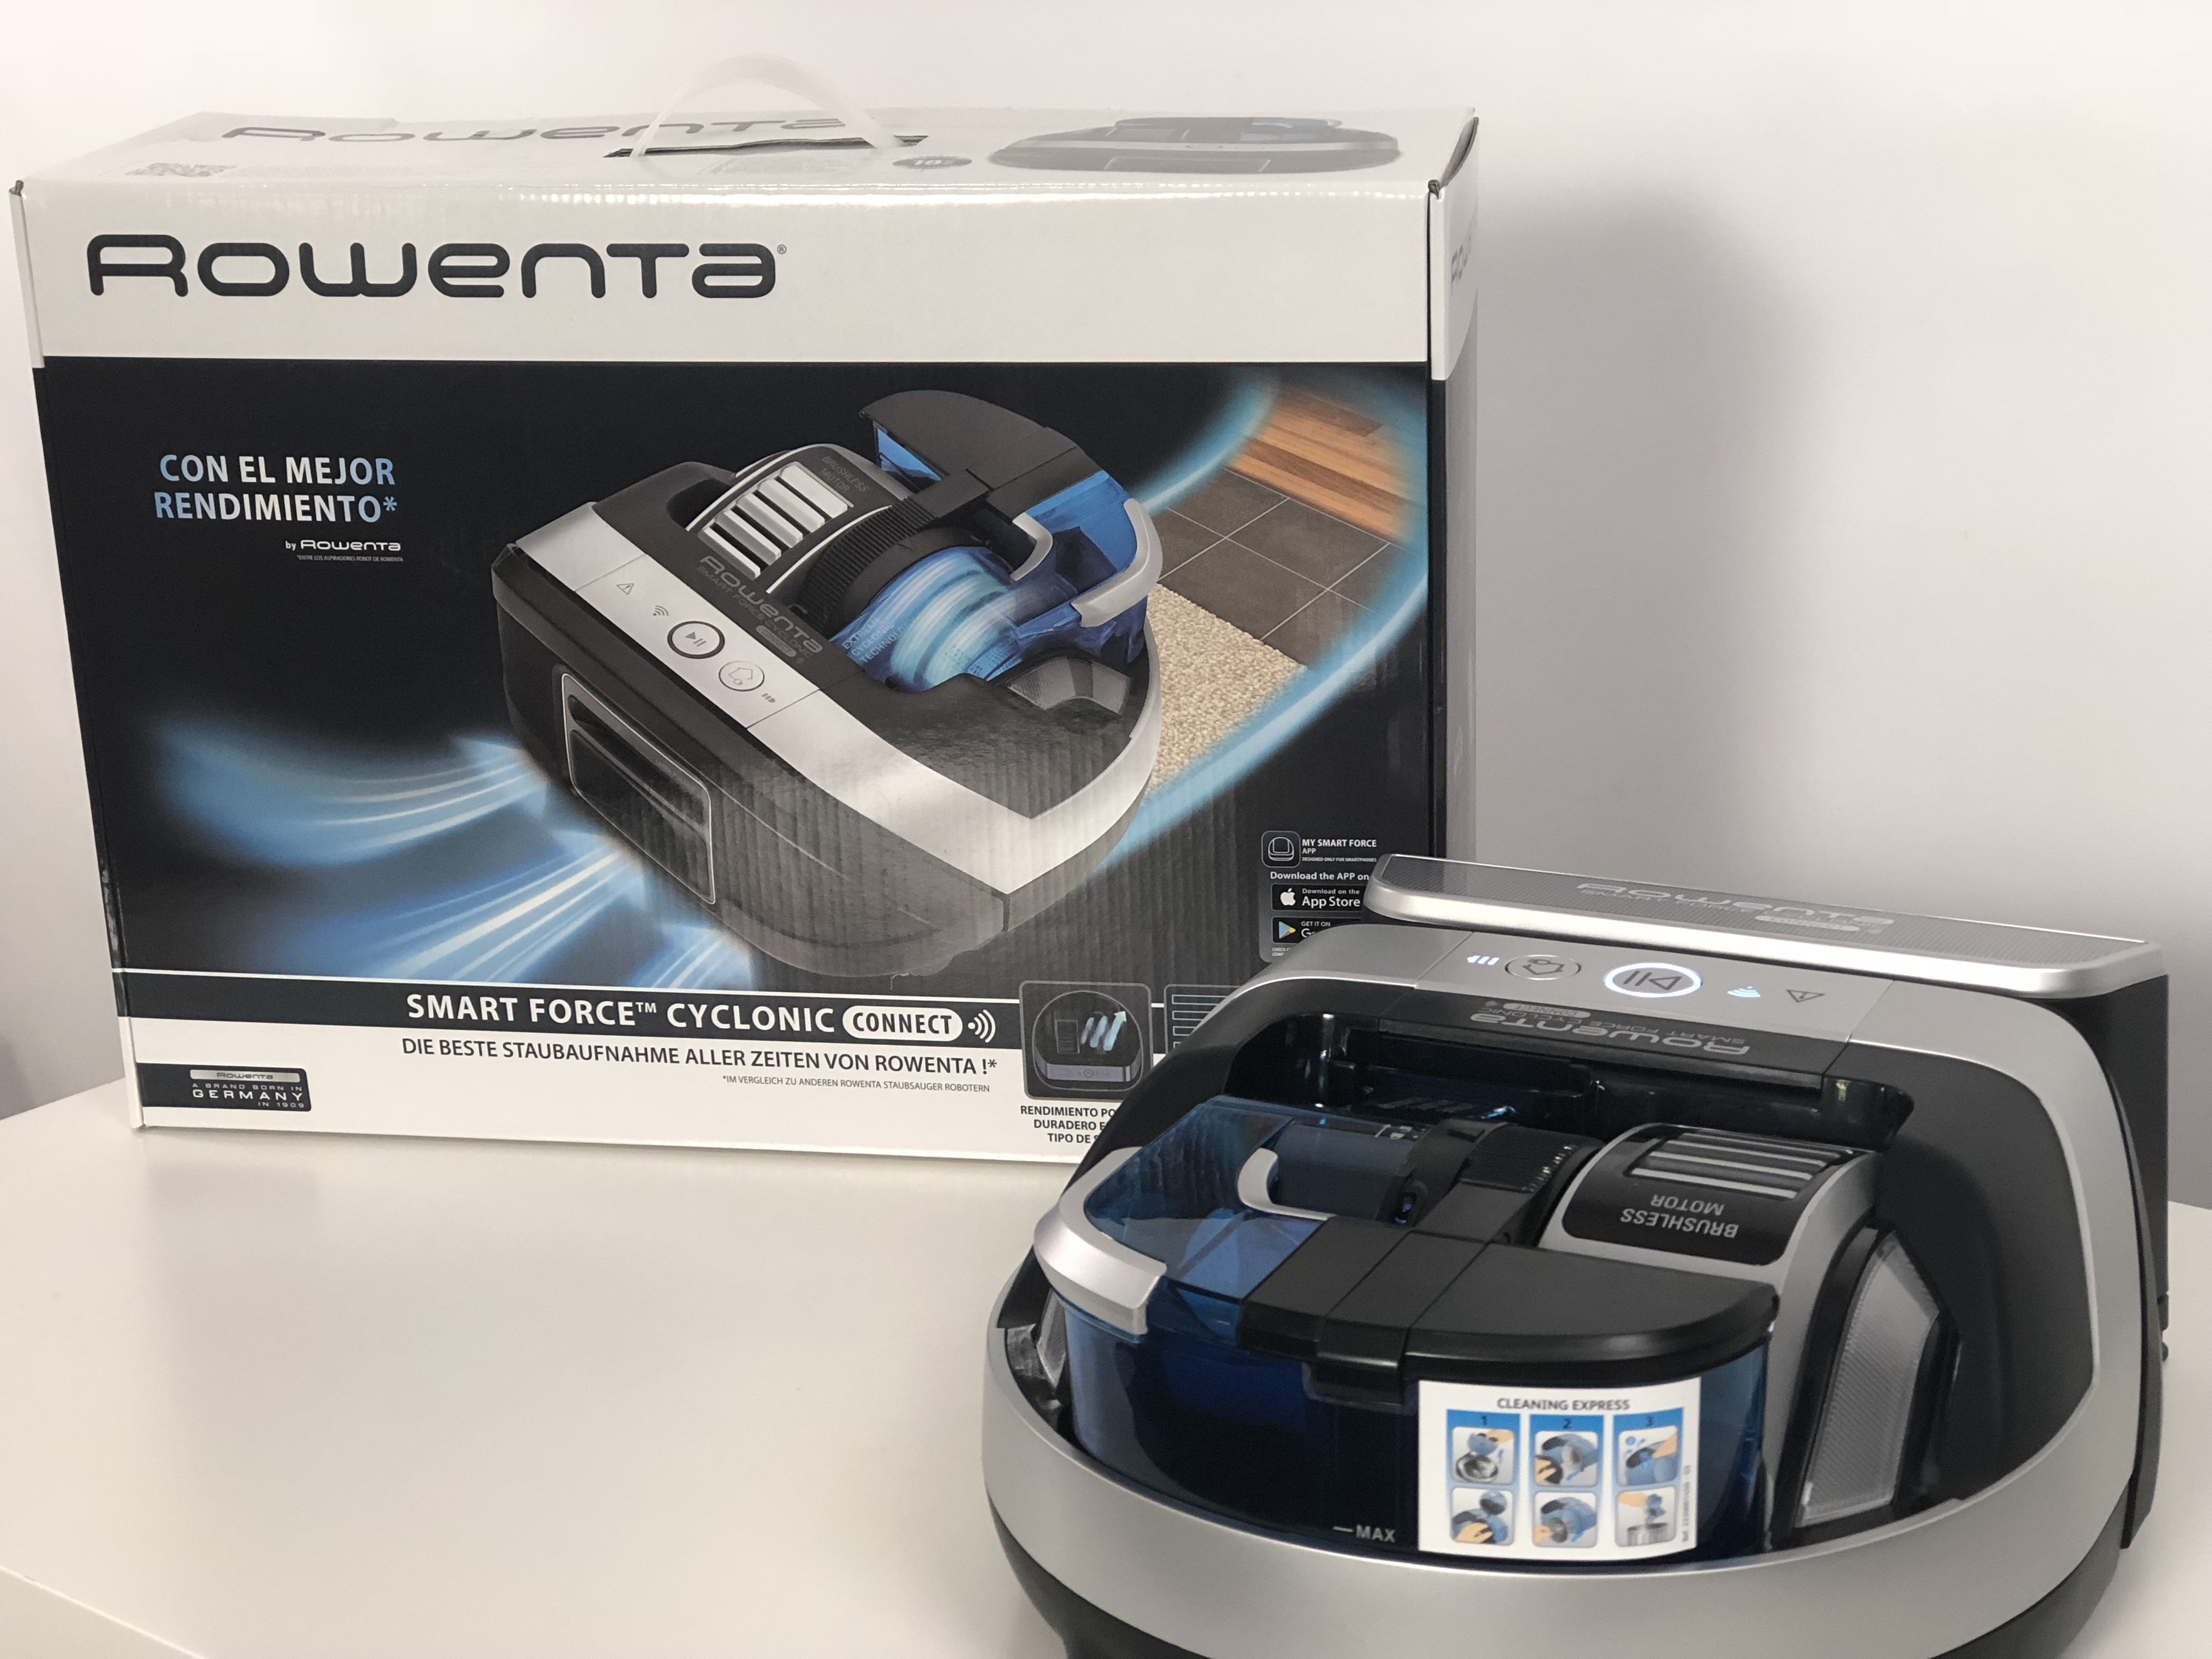 Rowenta Smart Force Cyclonic Connect